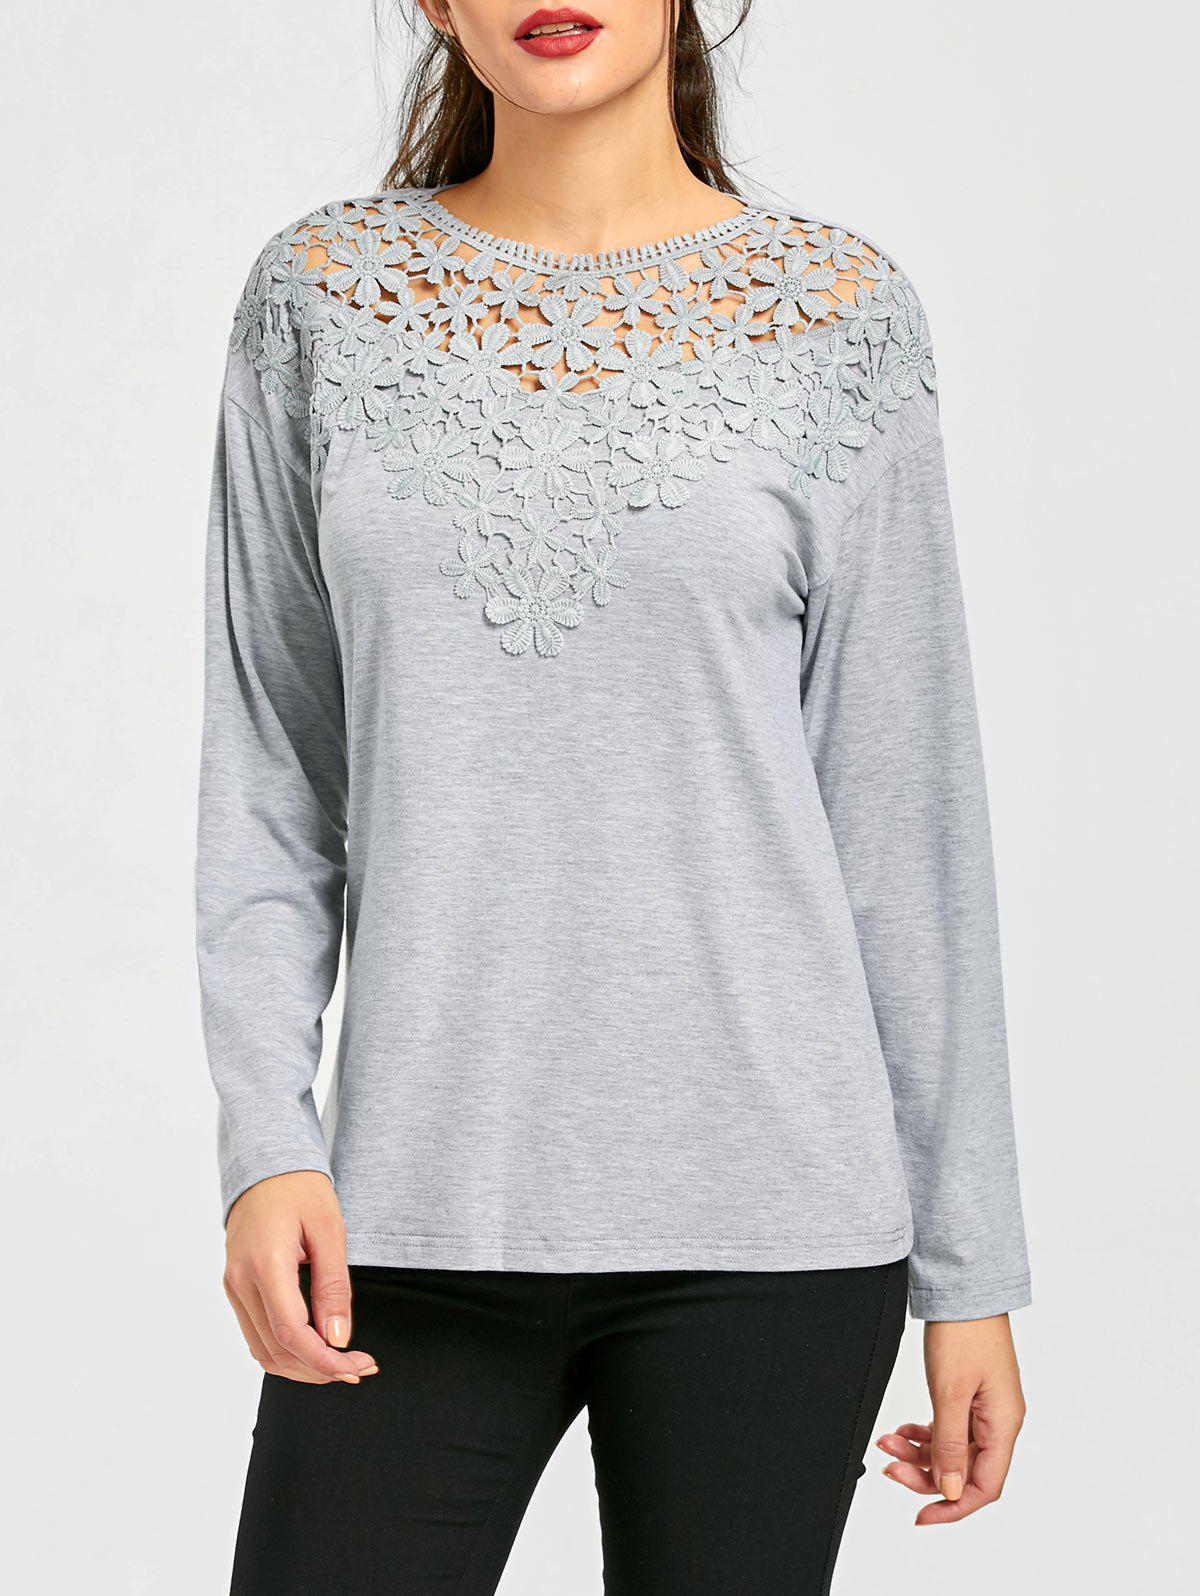 Lace Trim Cutwork Marled Top - GRAY L